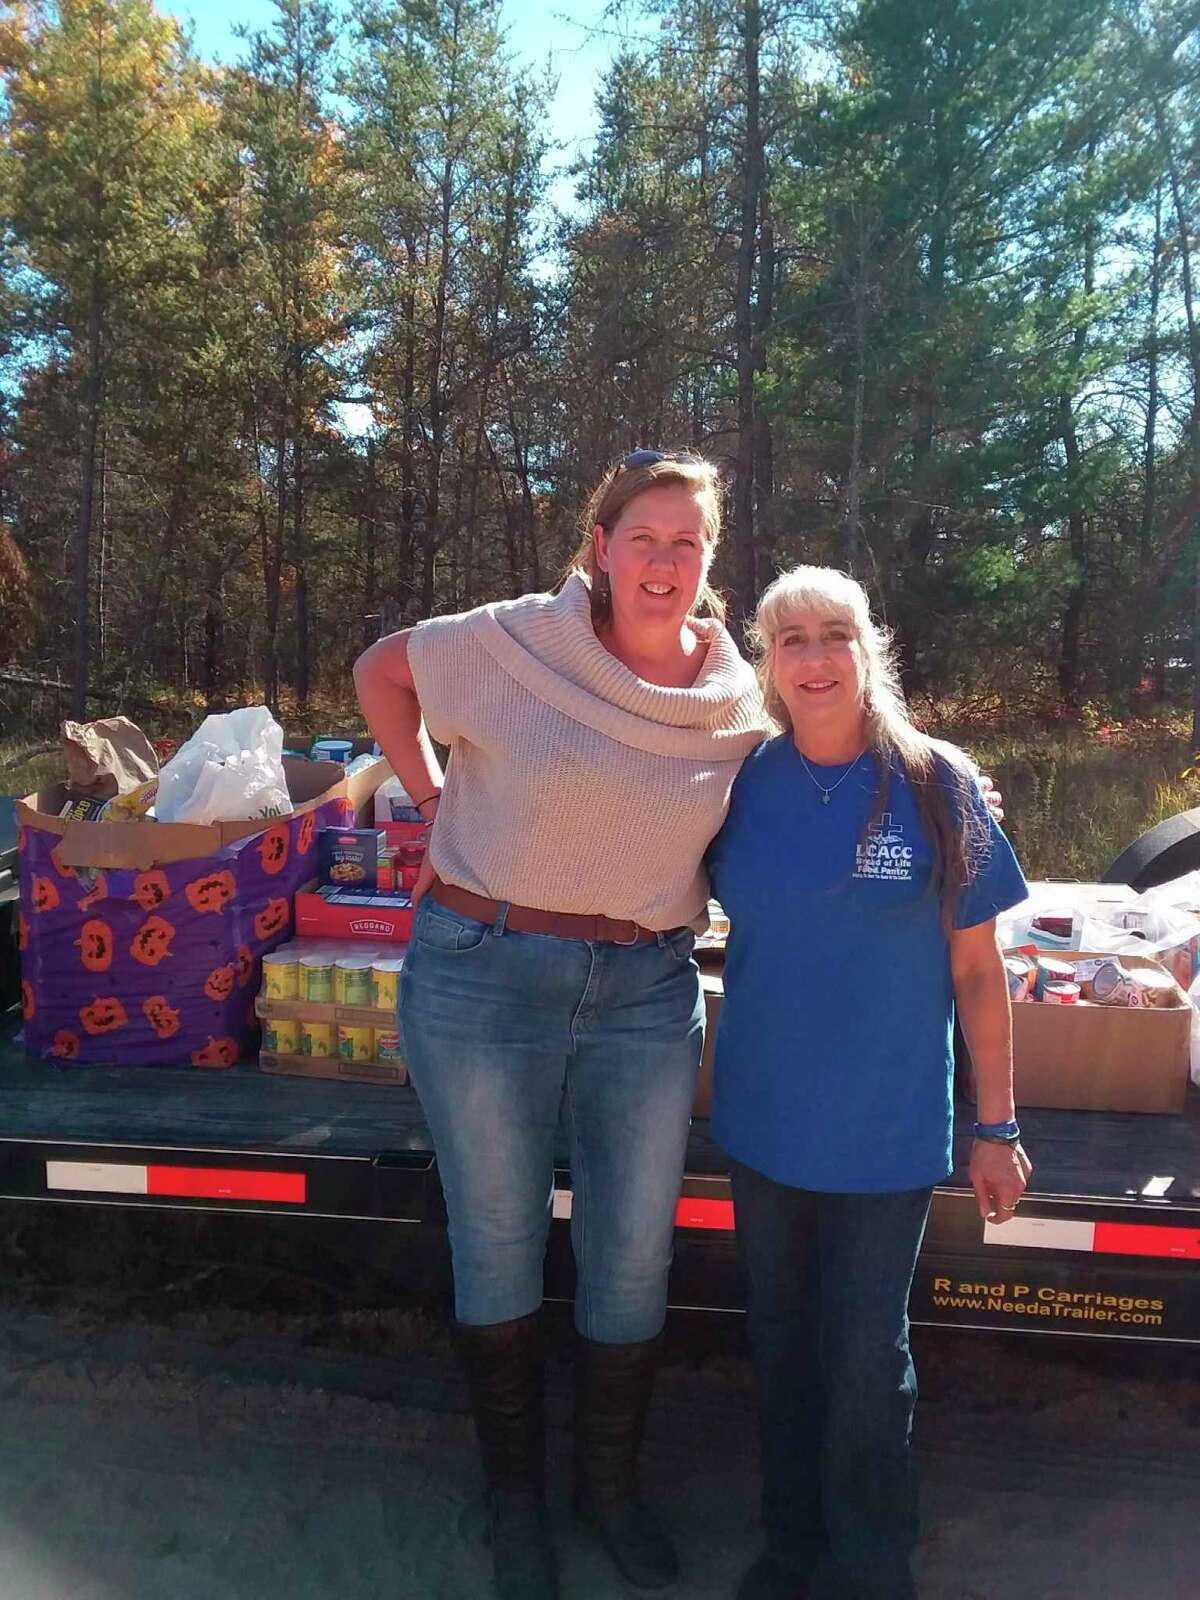 Kimberley O'Dea, left, helped to organized the Lake County ORV community food drive to benefit Bread of Life Pantry on Oct. 10. O'Dea and pantry director Lynne Mills stand next to the donated food. (Submitted photo)